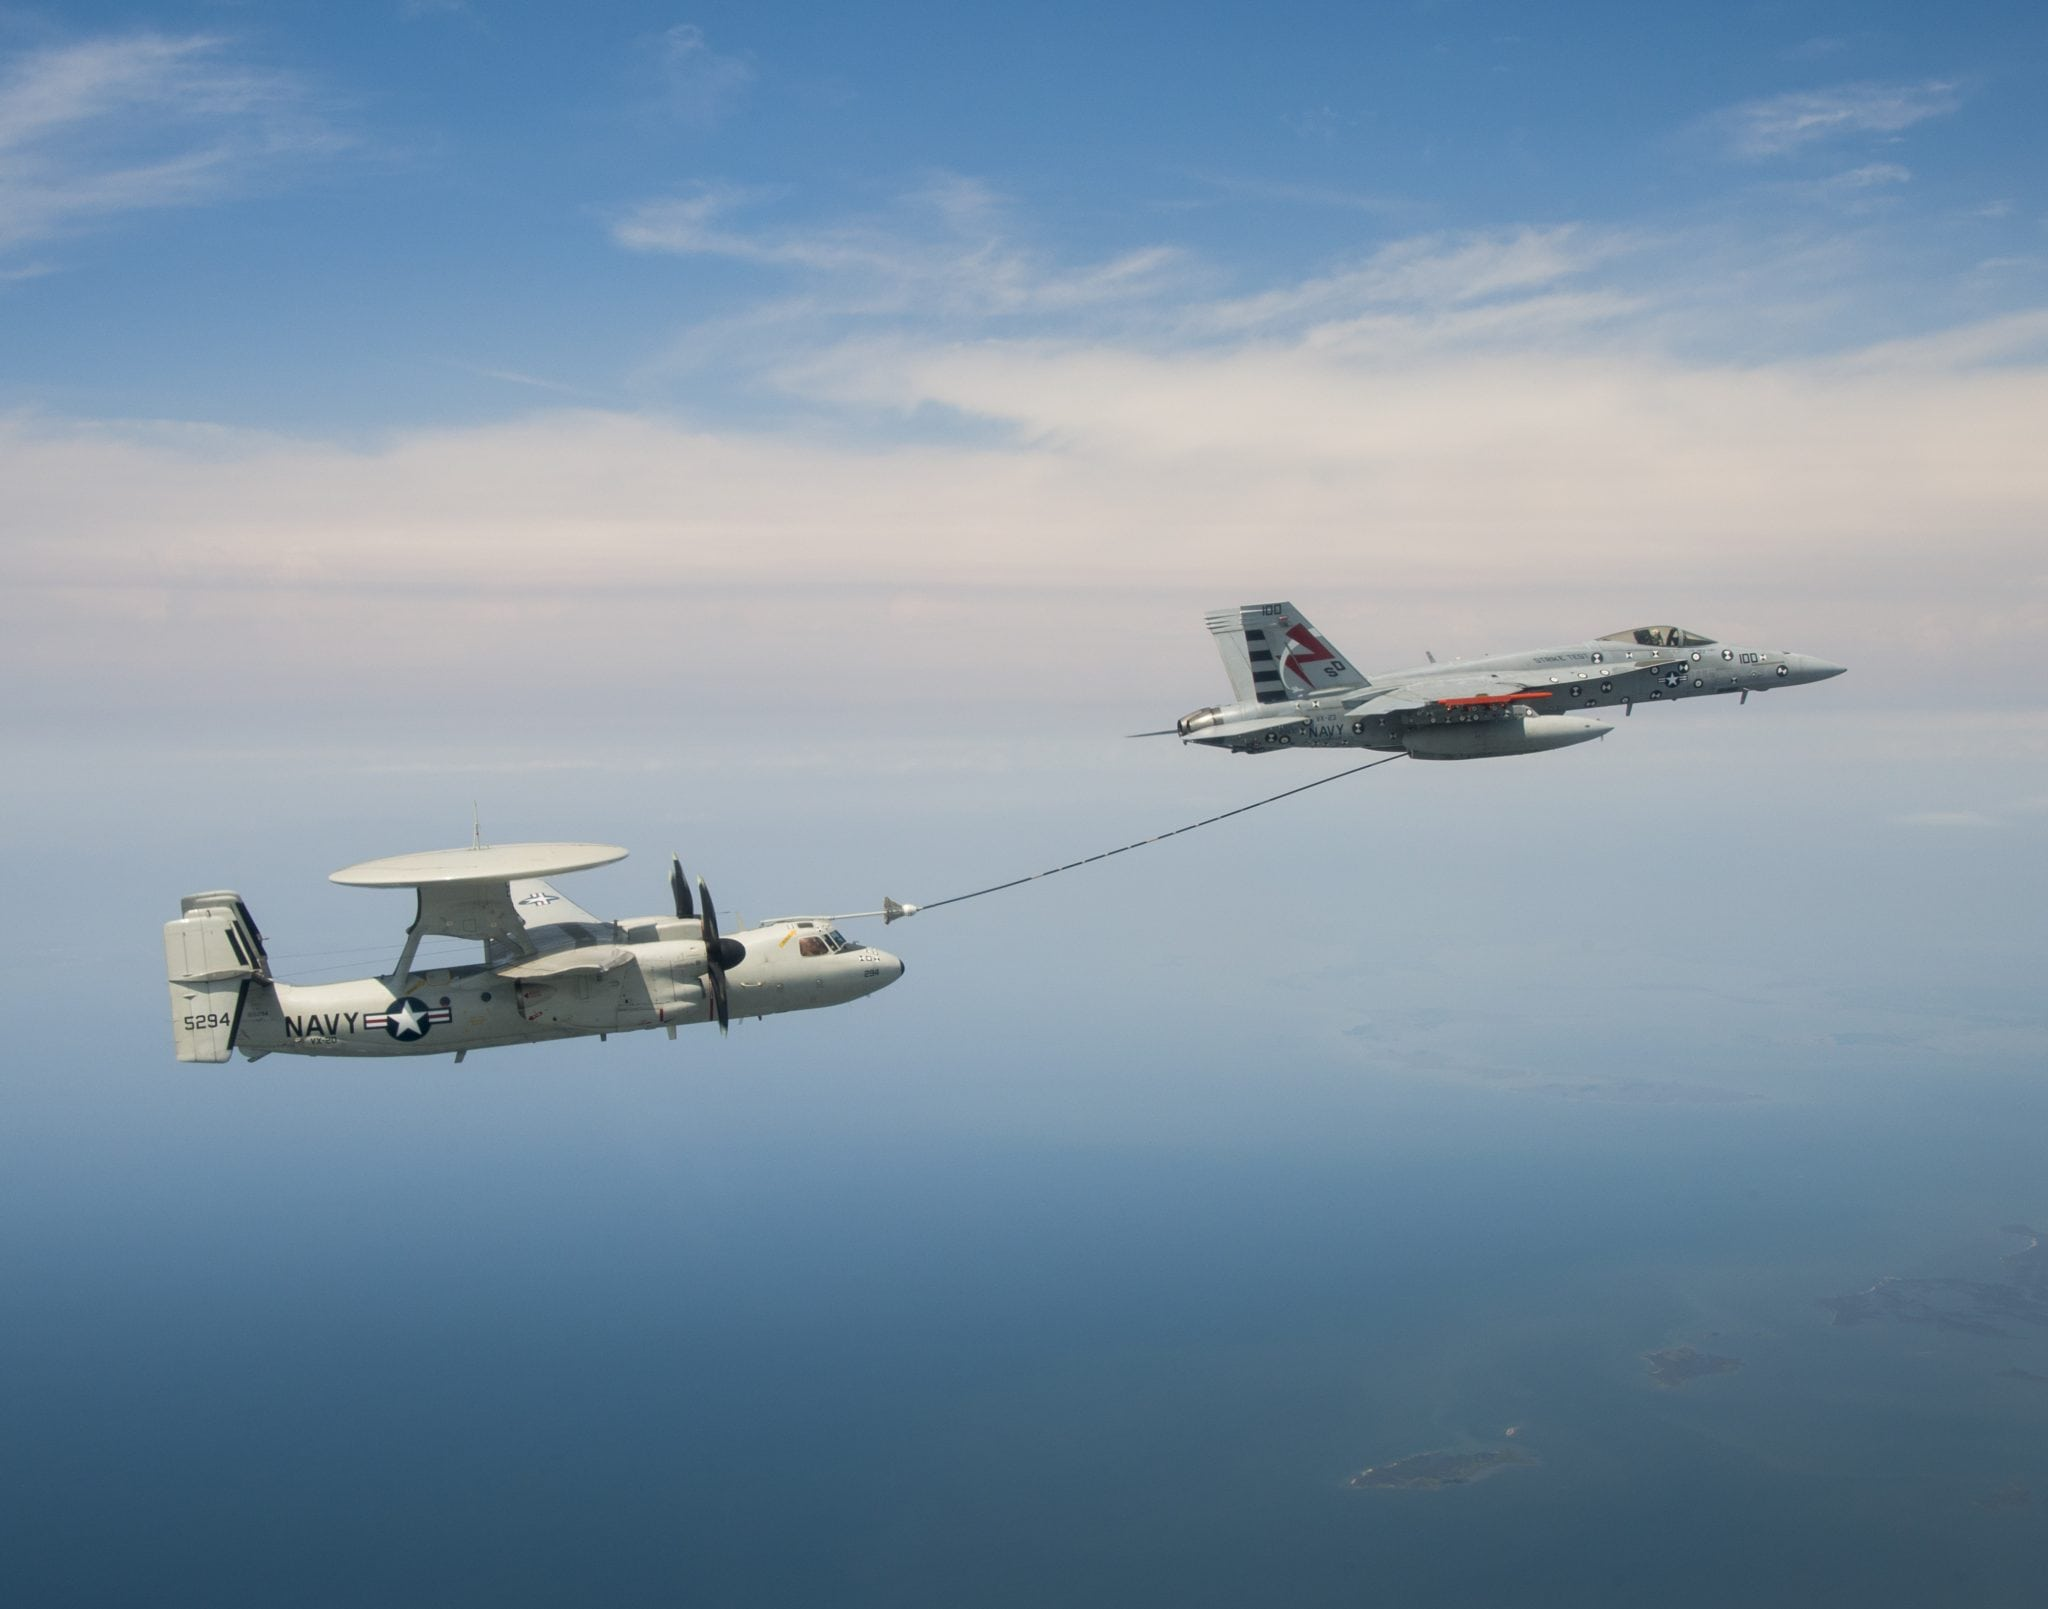 An E-2C test aircraft assigned to Air Test and Evaluation Squadron (VX) 20 conducts an aerial refueling dry-plug engagement with an F/A-18